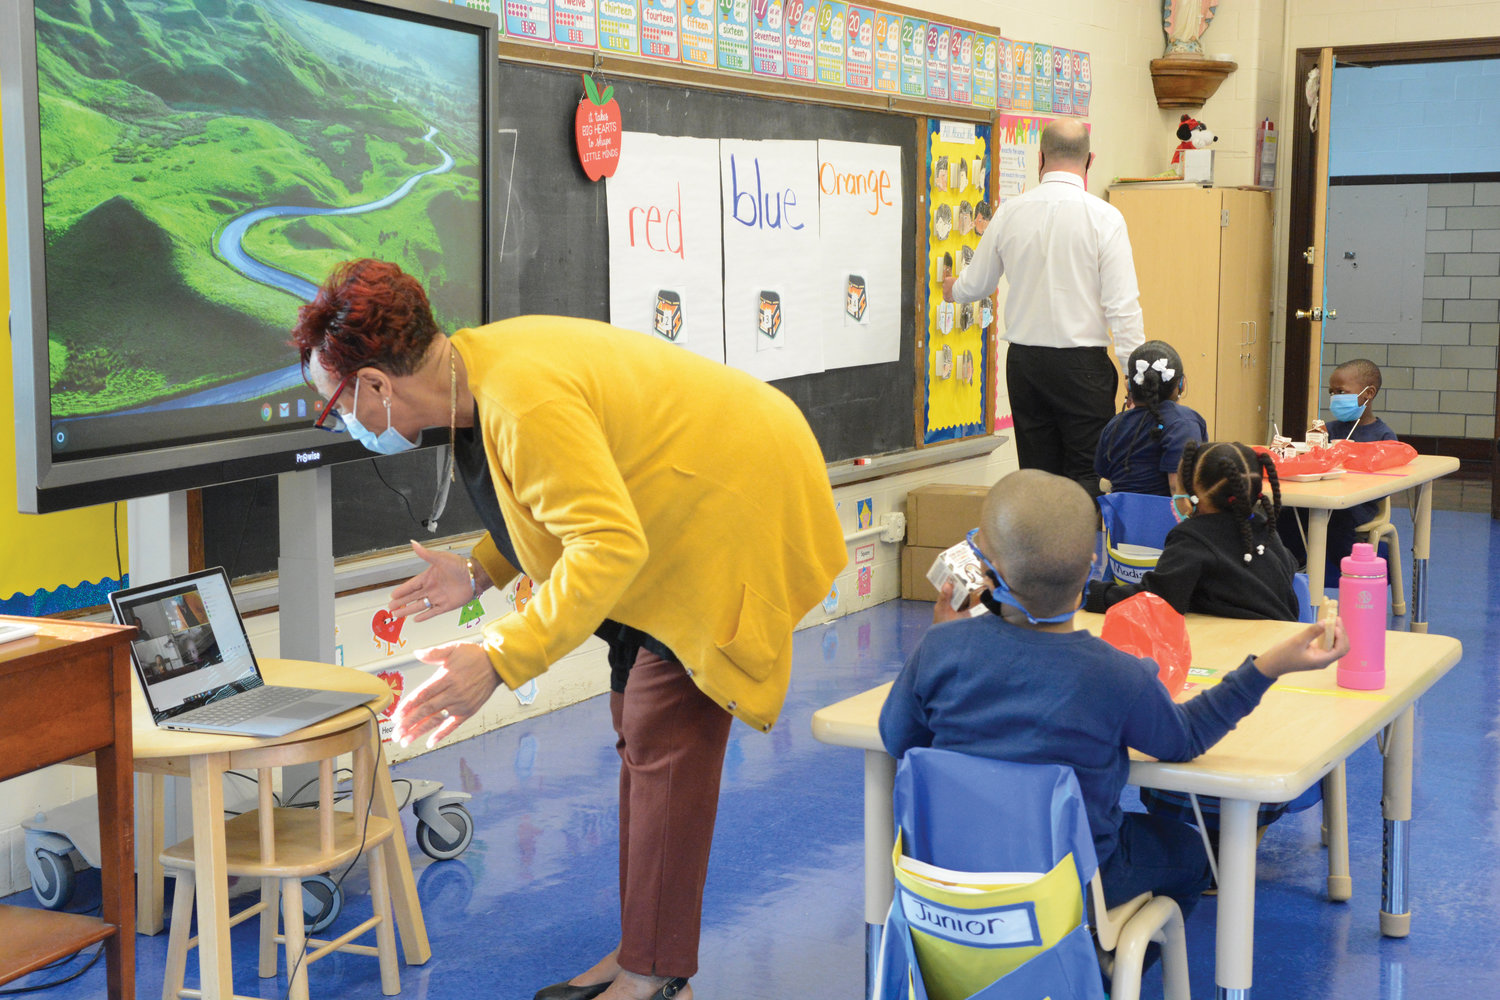 Kindergarten teacher Estoria Wills teaches students on Zoom Sept. 22. In the background assisting students is principal Rich Helmrich.